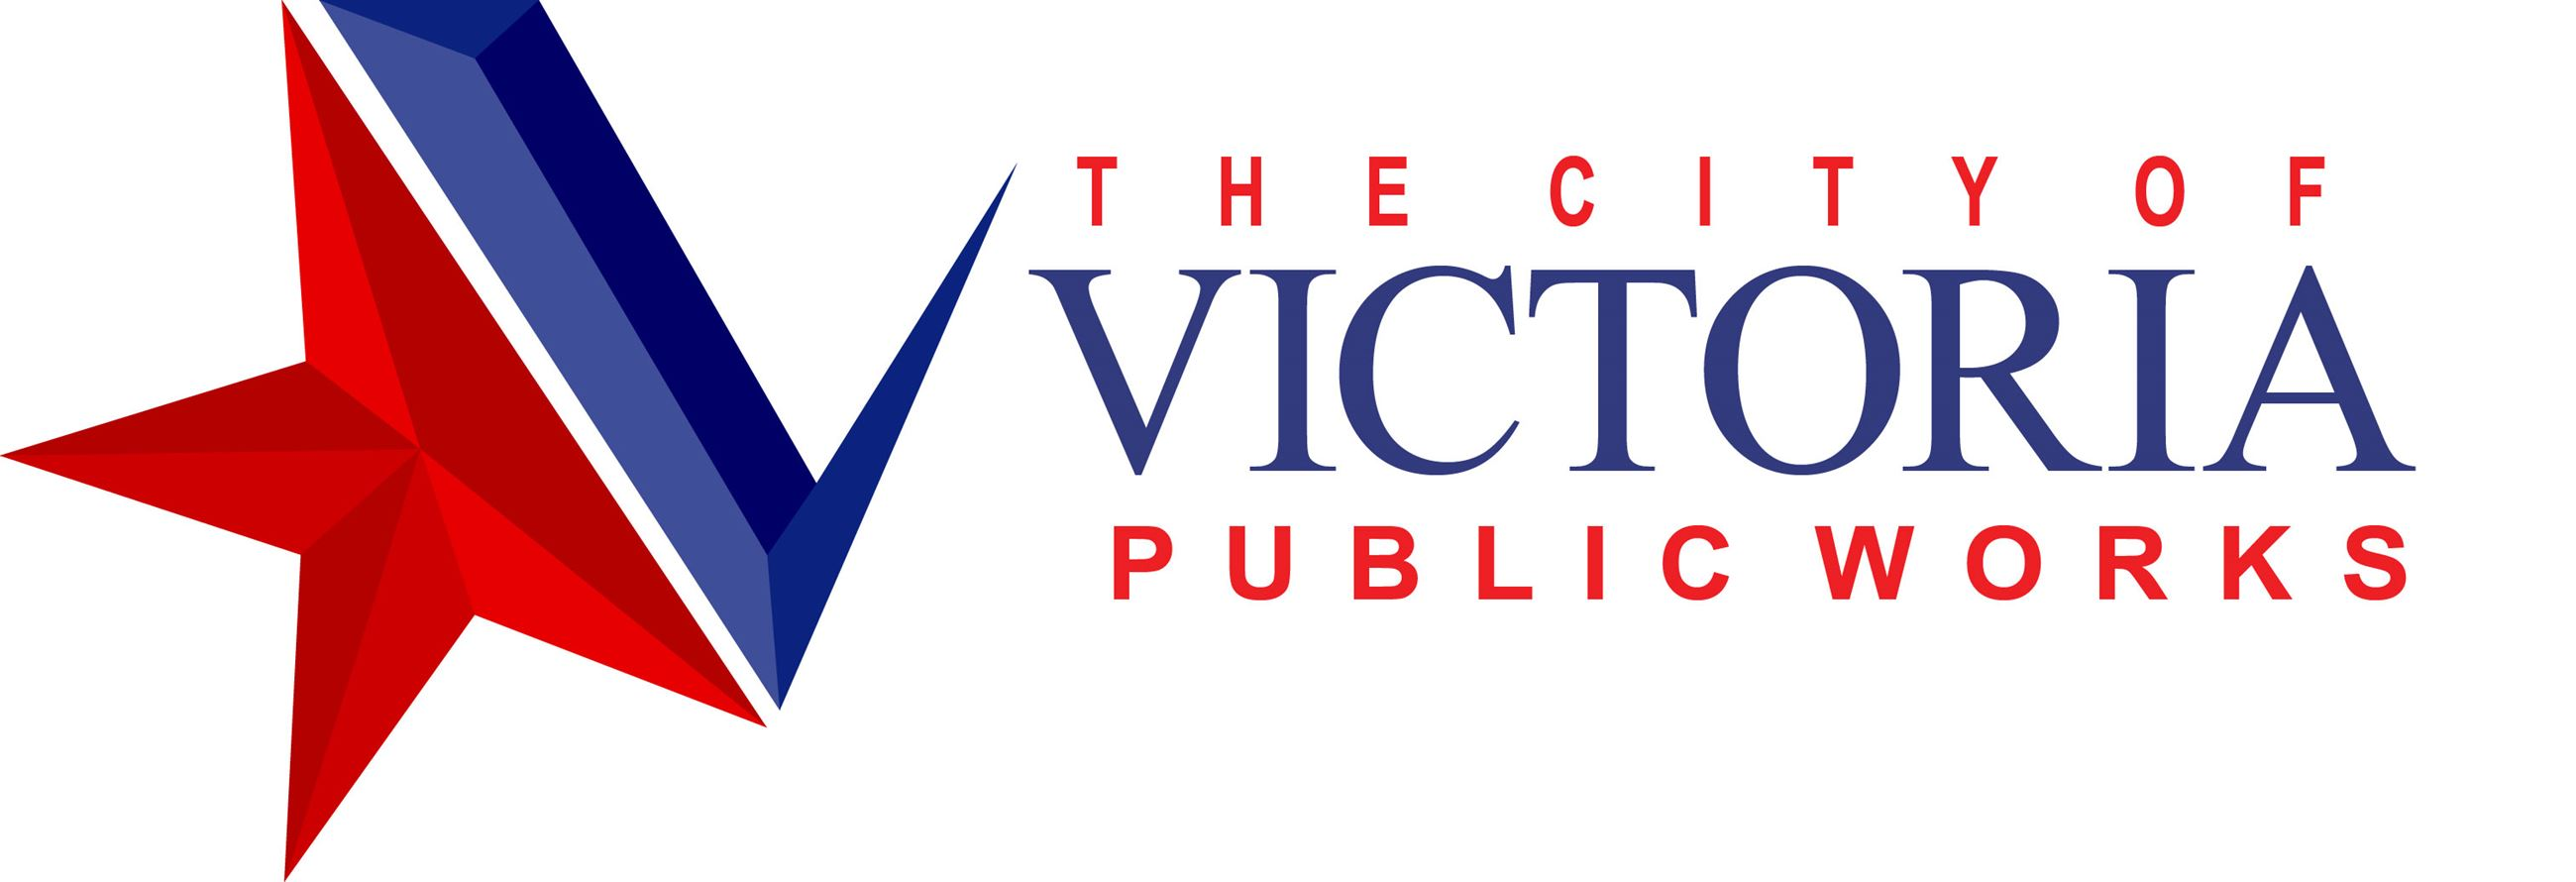 Public Works logo with blue-and-red City of Victoria star